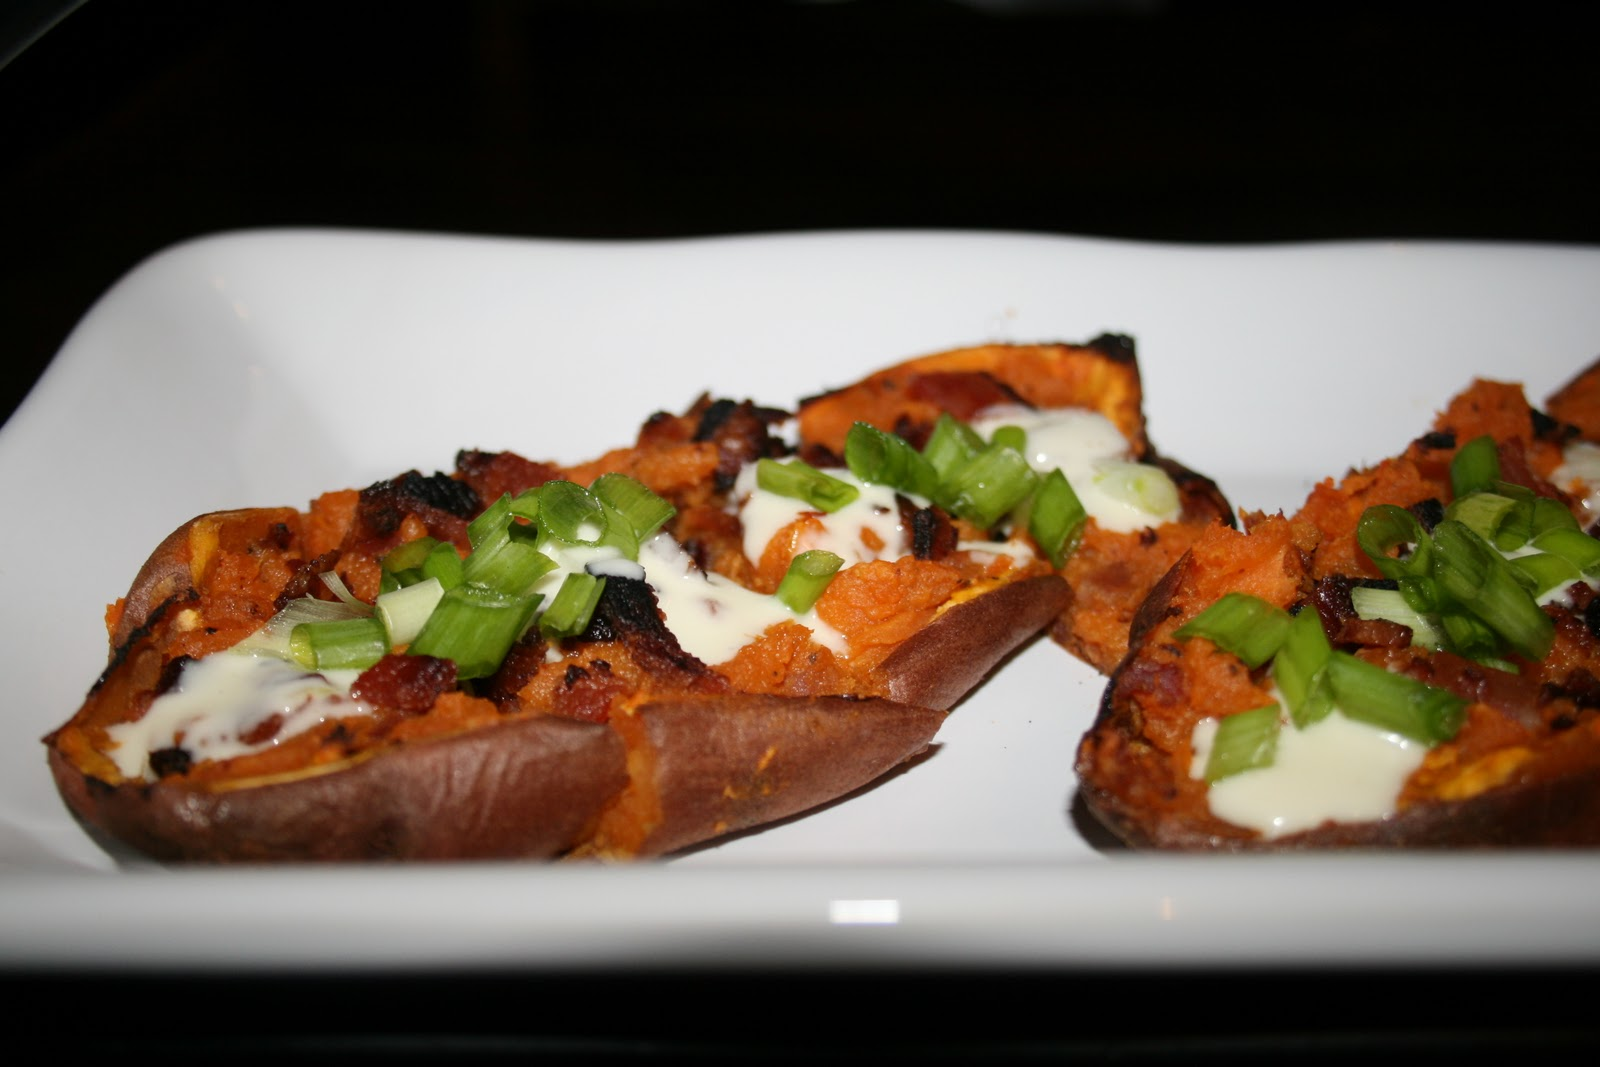 ... | Paleo Recipes, meal plans, and shopping lists: Paleo Potato Skins